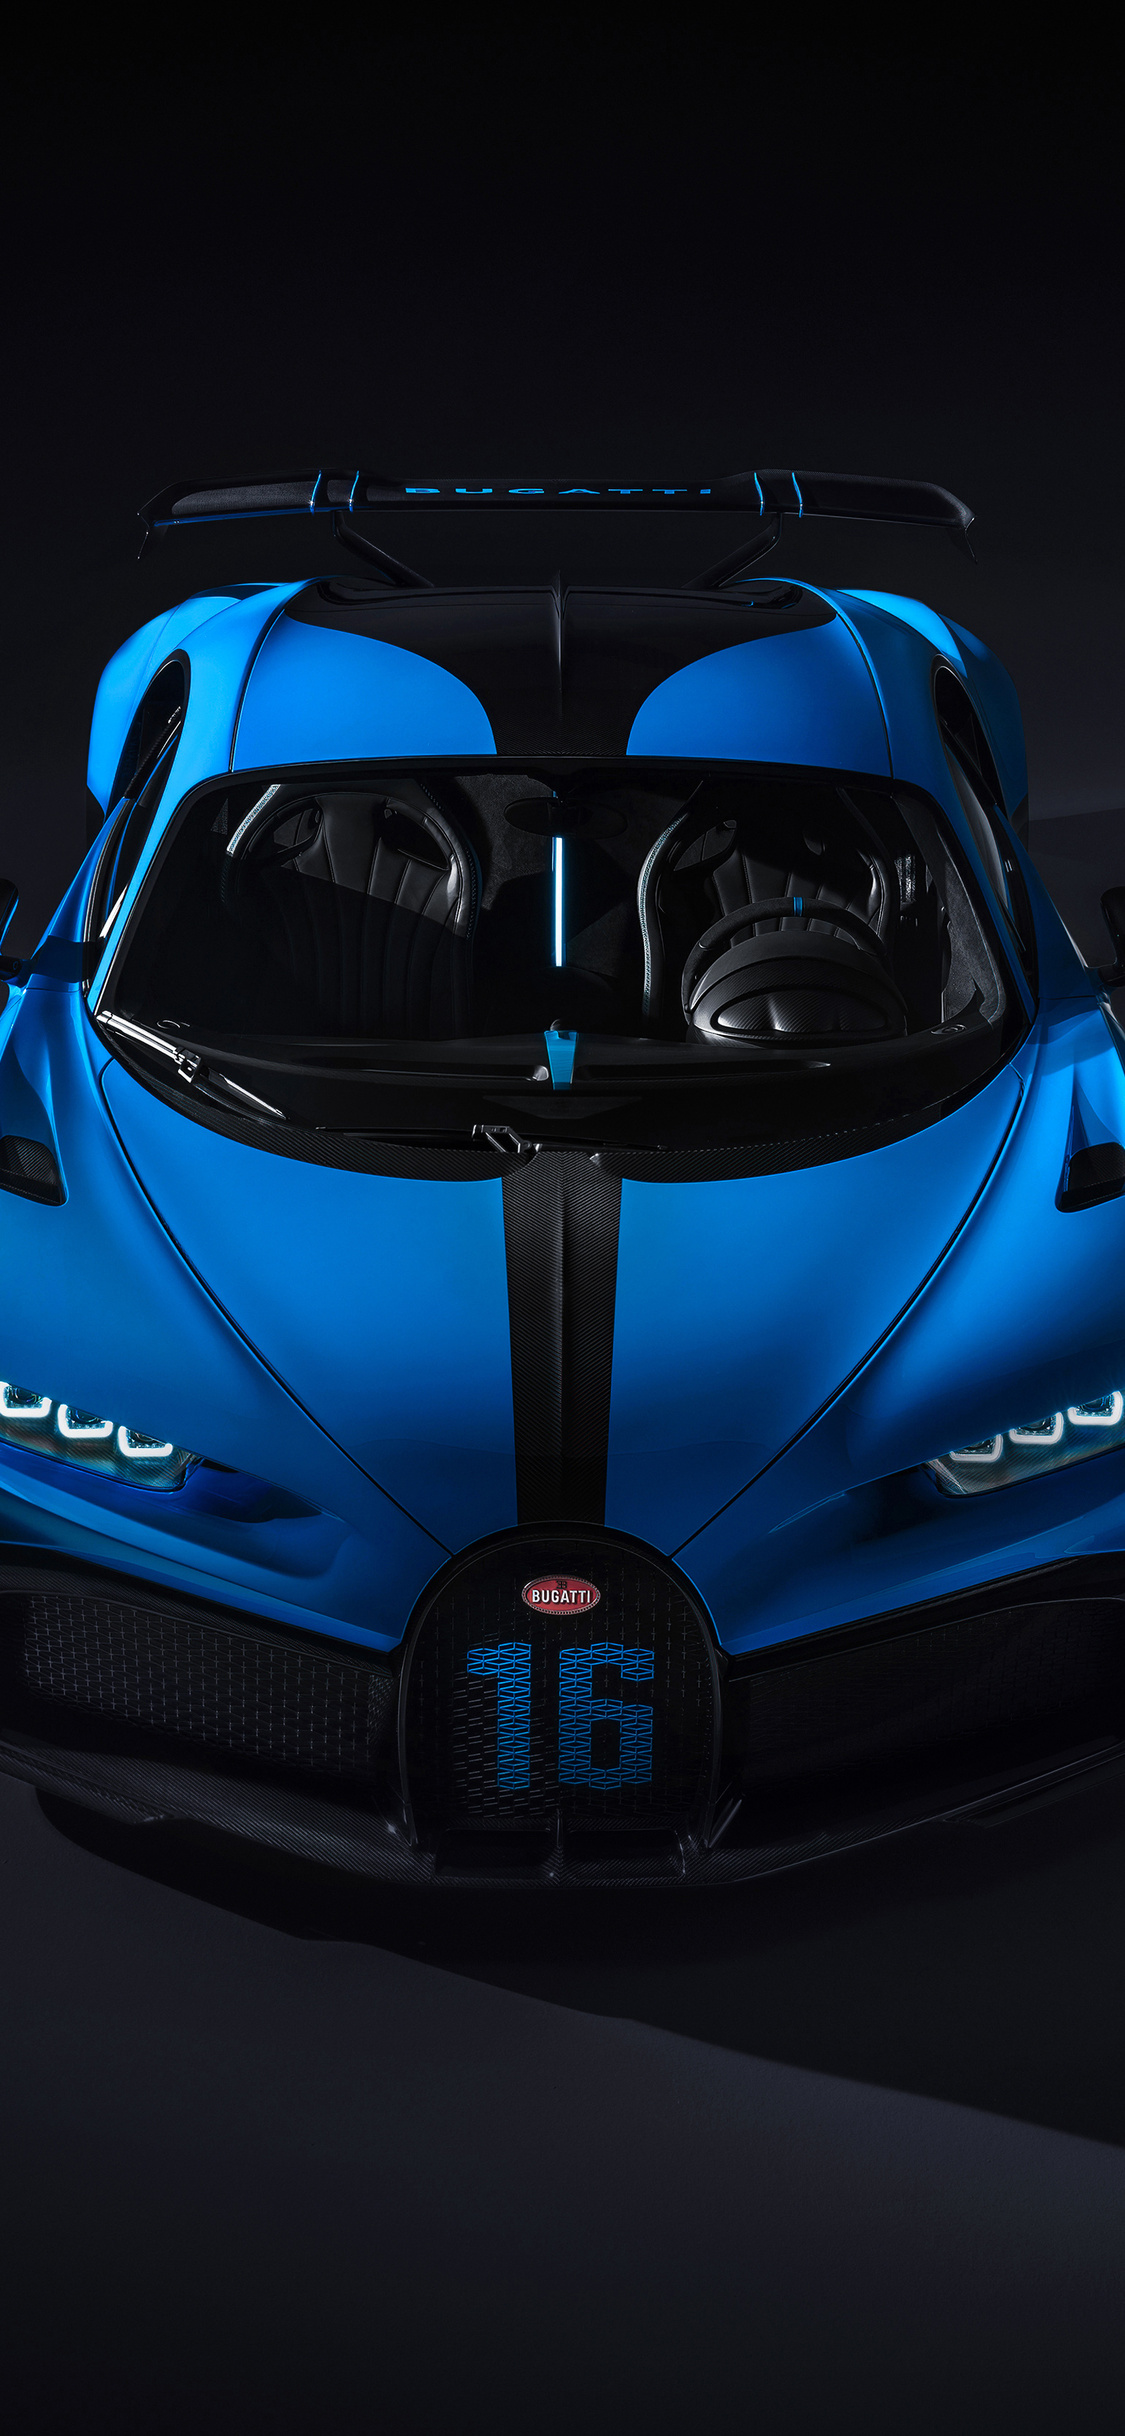 1125x2436 2020 Bugatti Chiron Pur Sport Iphone Xs Iphone 10 Iphone X Hd 4k Wallpapers Images Backgrounds Photos And Pictures